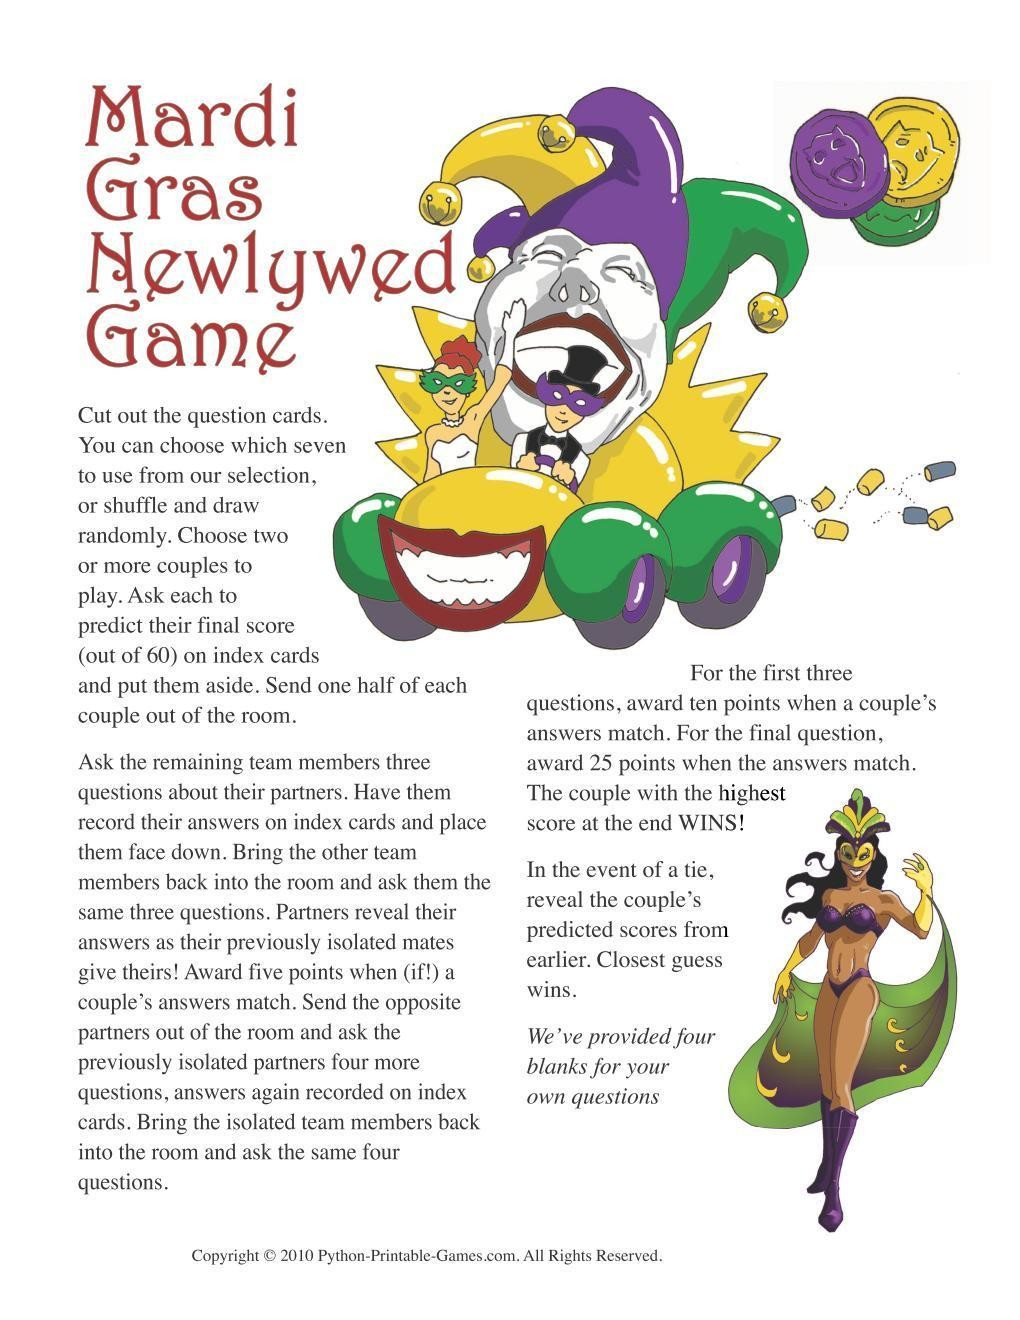 Mardi Gras: Newlywed Game Questions